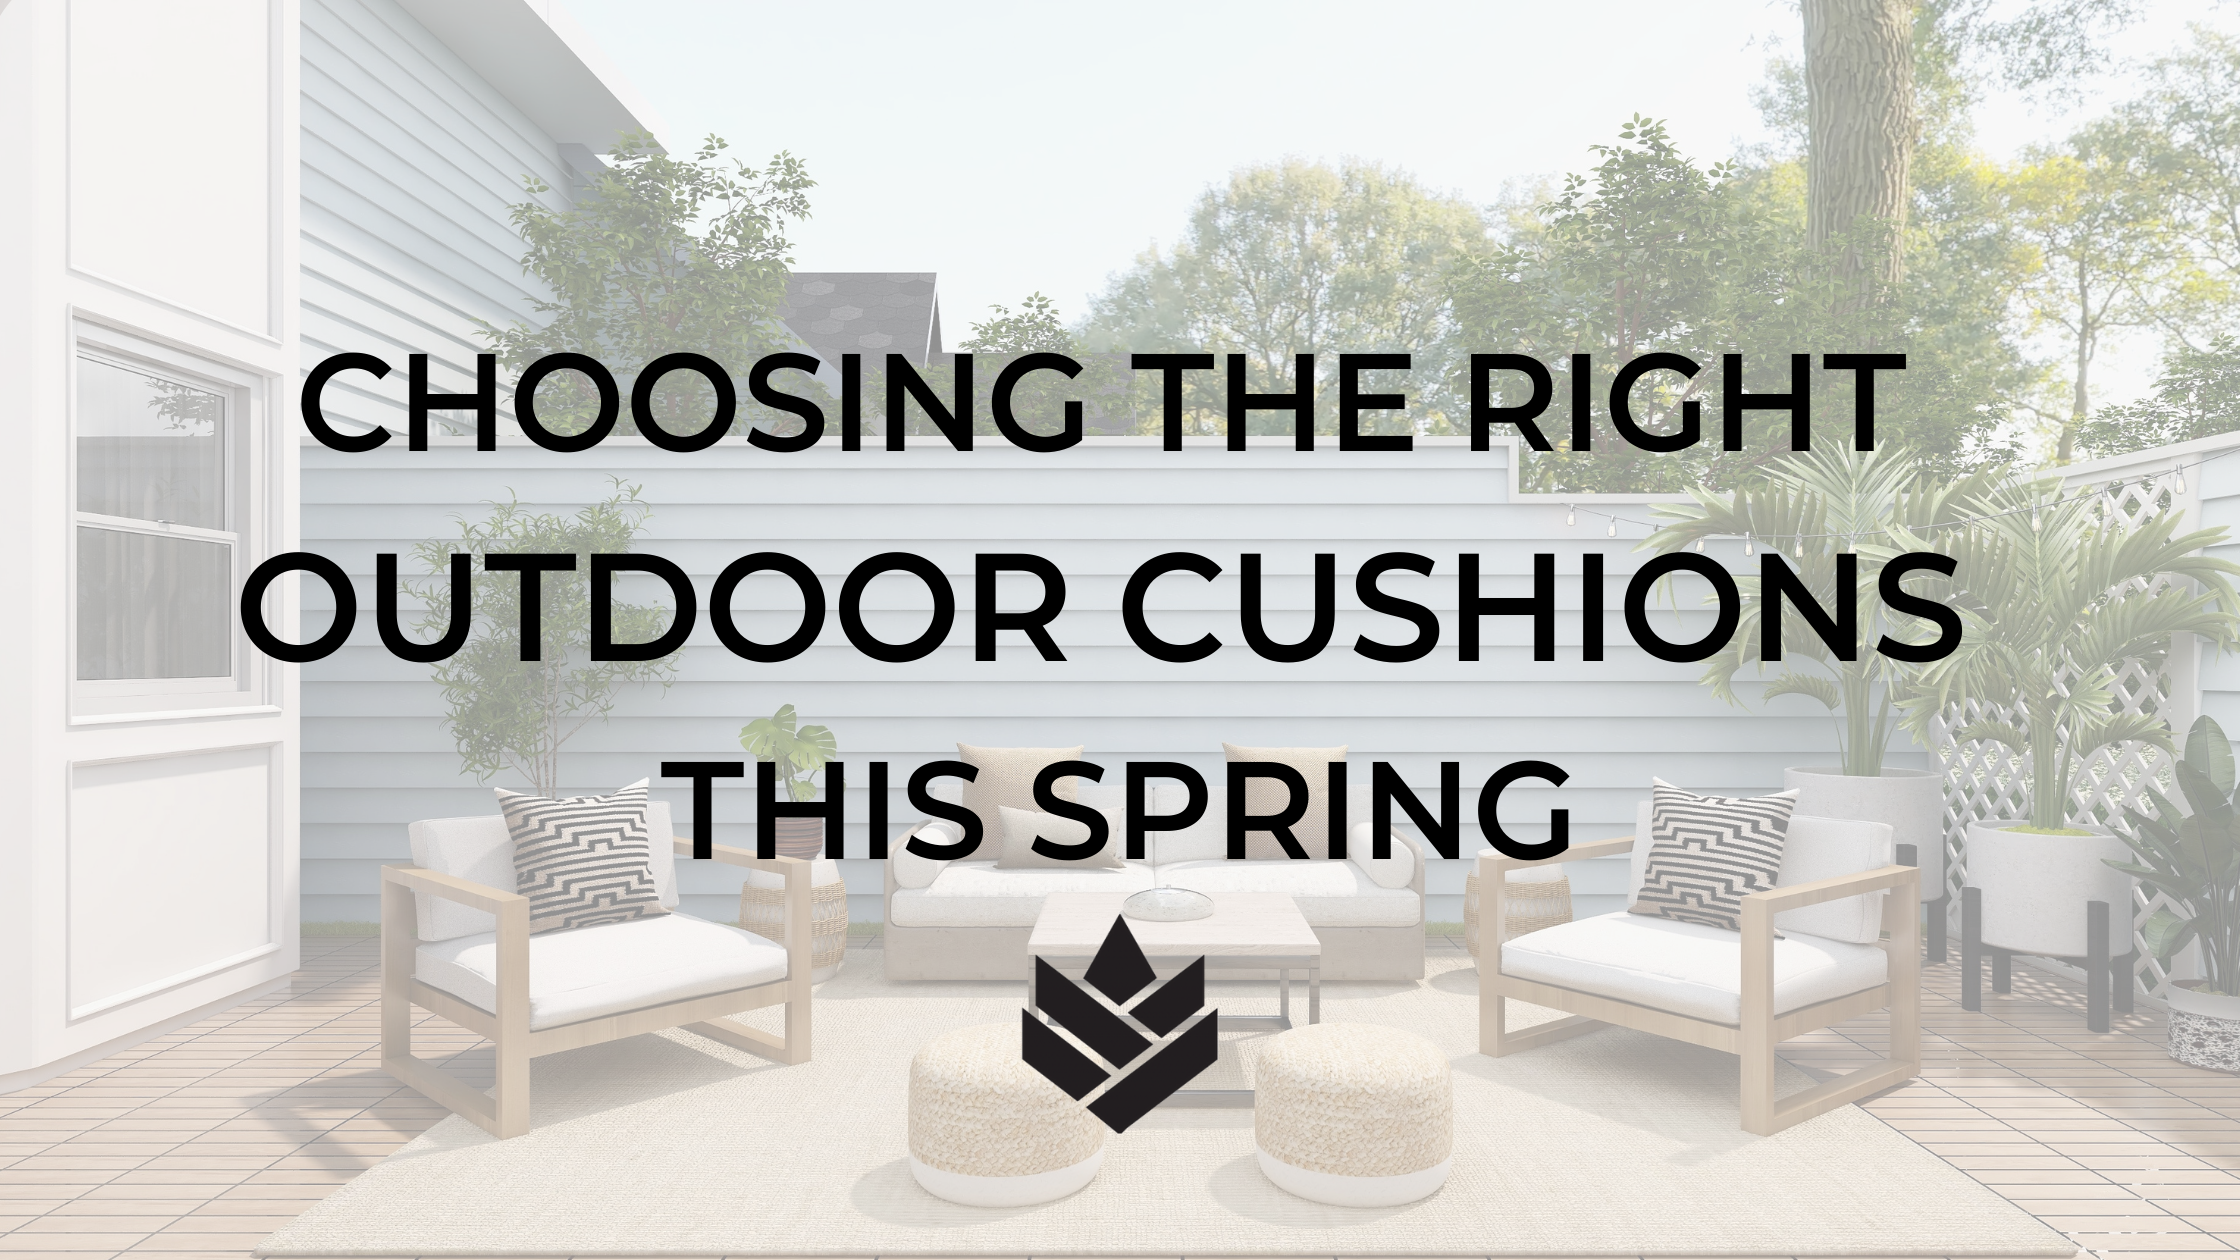 Choosing the Right Outdoor Cushions this Spring